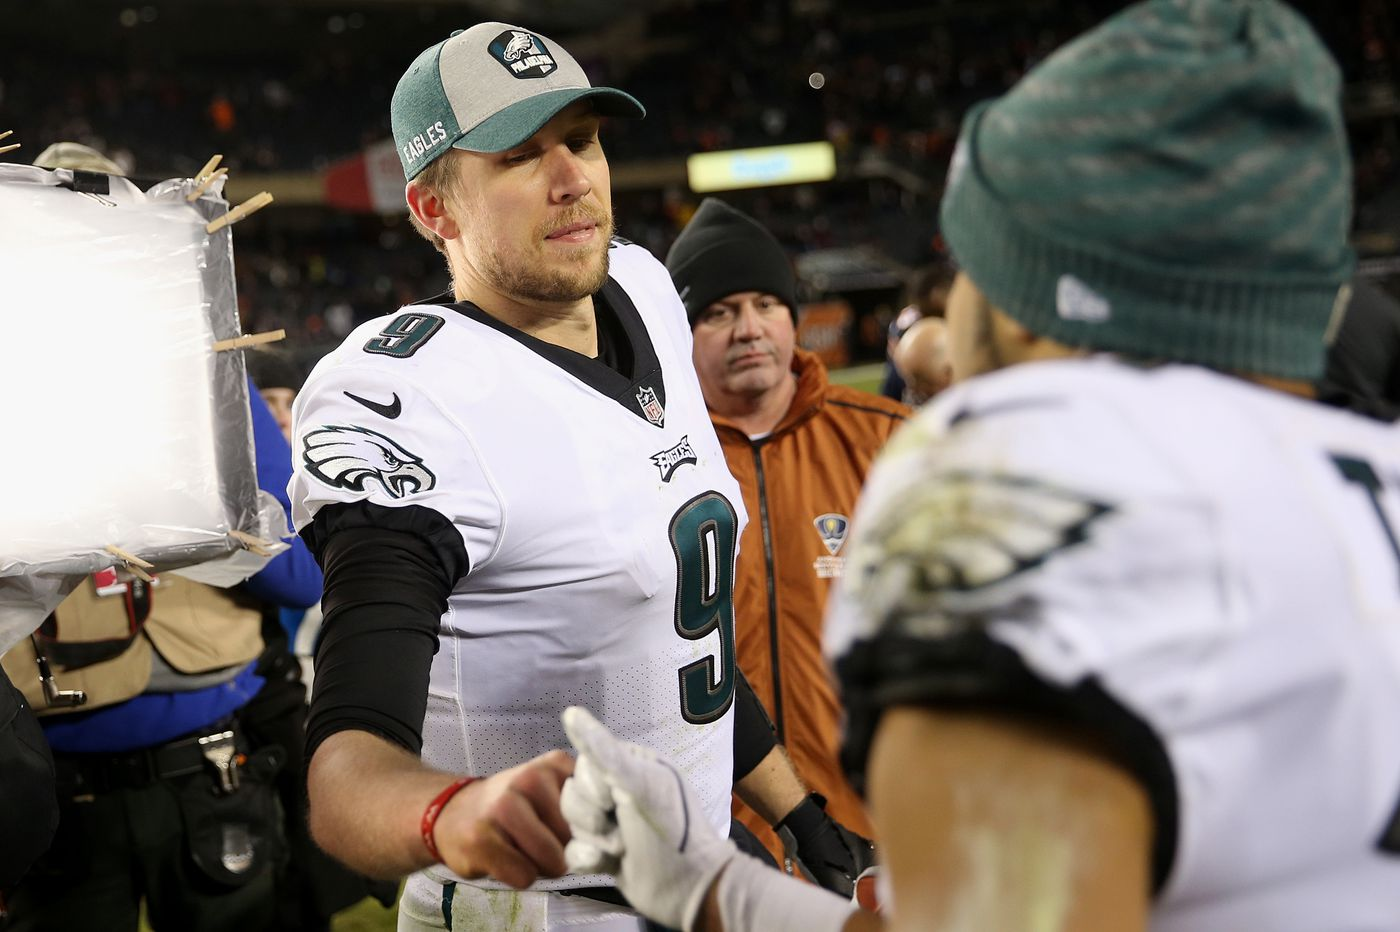 Legend of Nick Foles grows as he becomes highest-rated NFL playoff passer ever in Eagles' win over Bears | Marcus Hayes